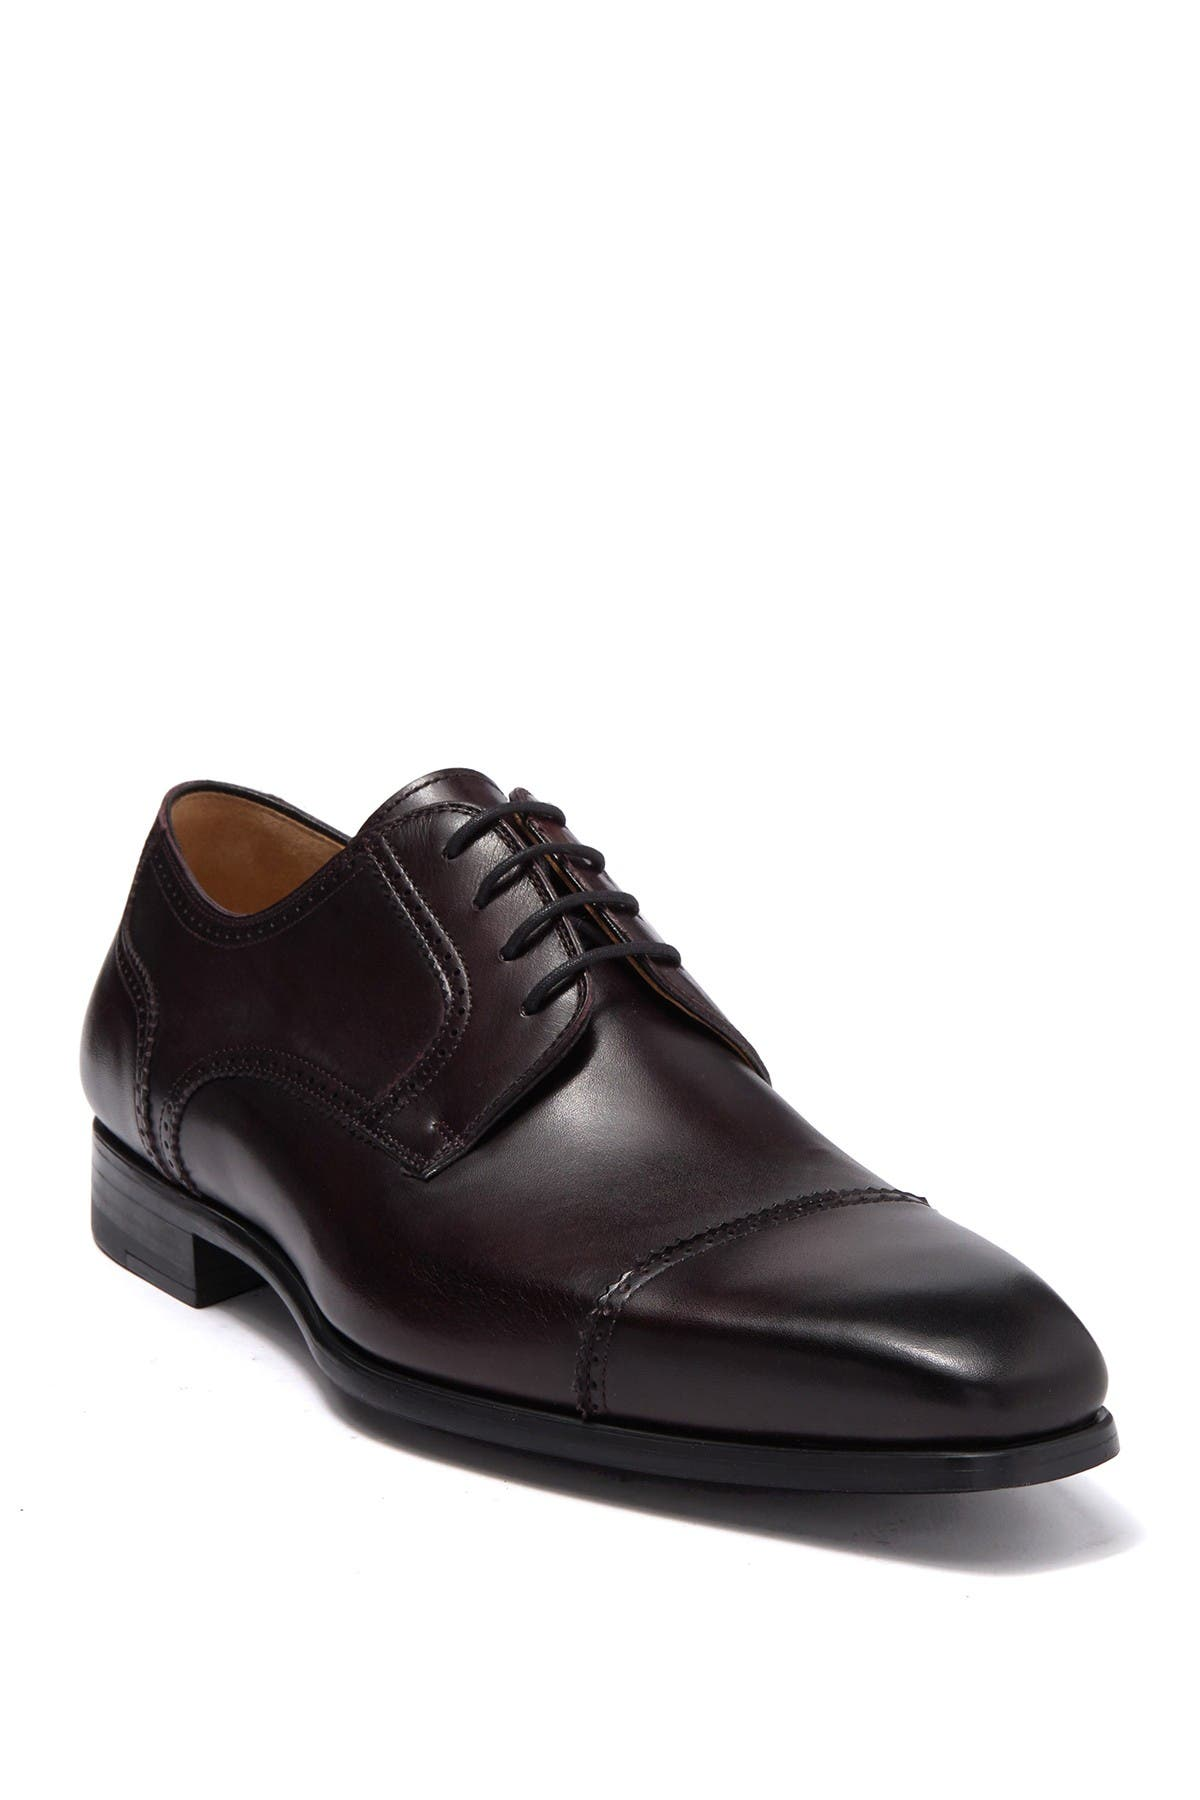 Image of Magnanni Carlito II Leather Derby